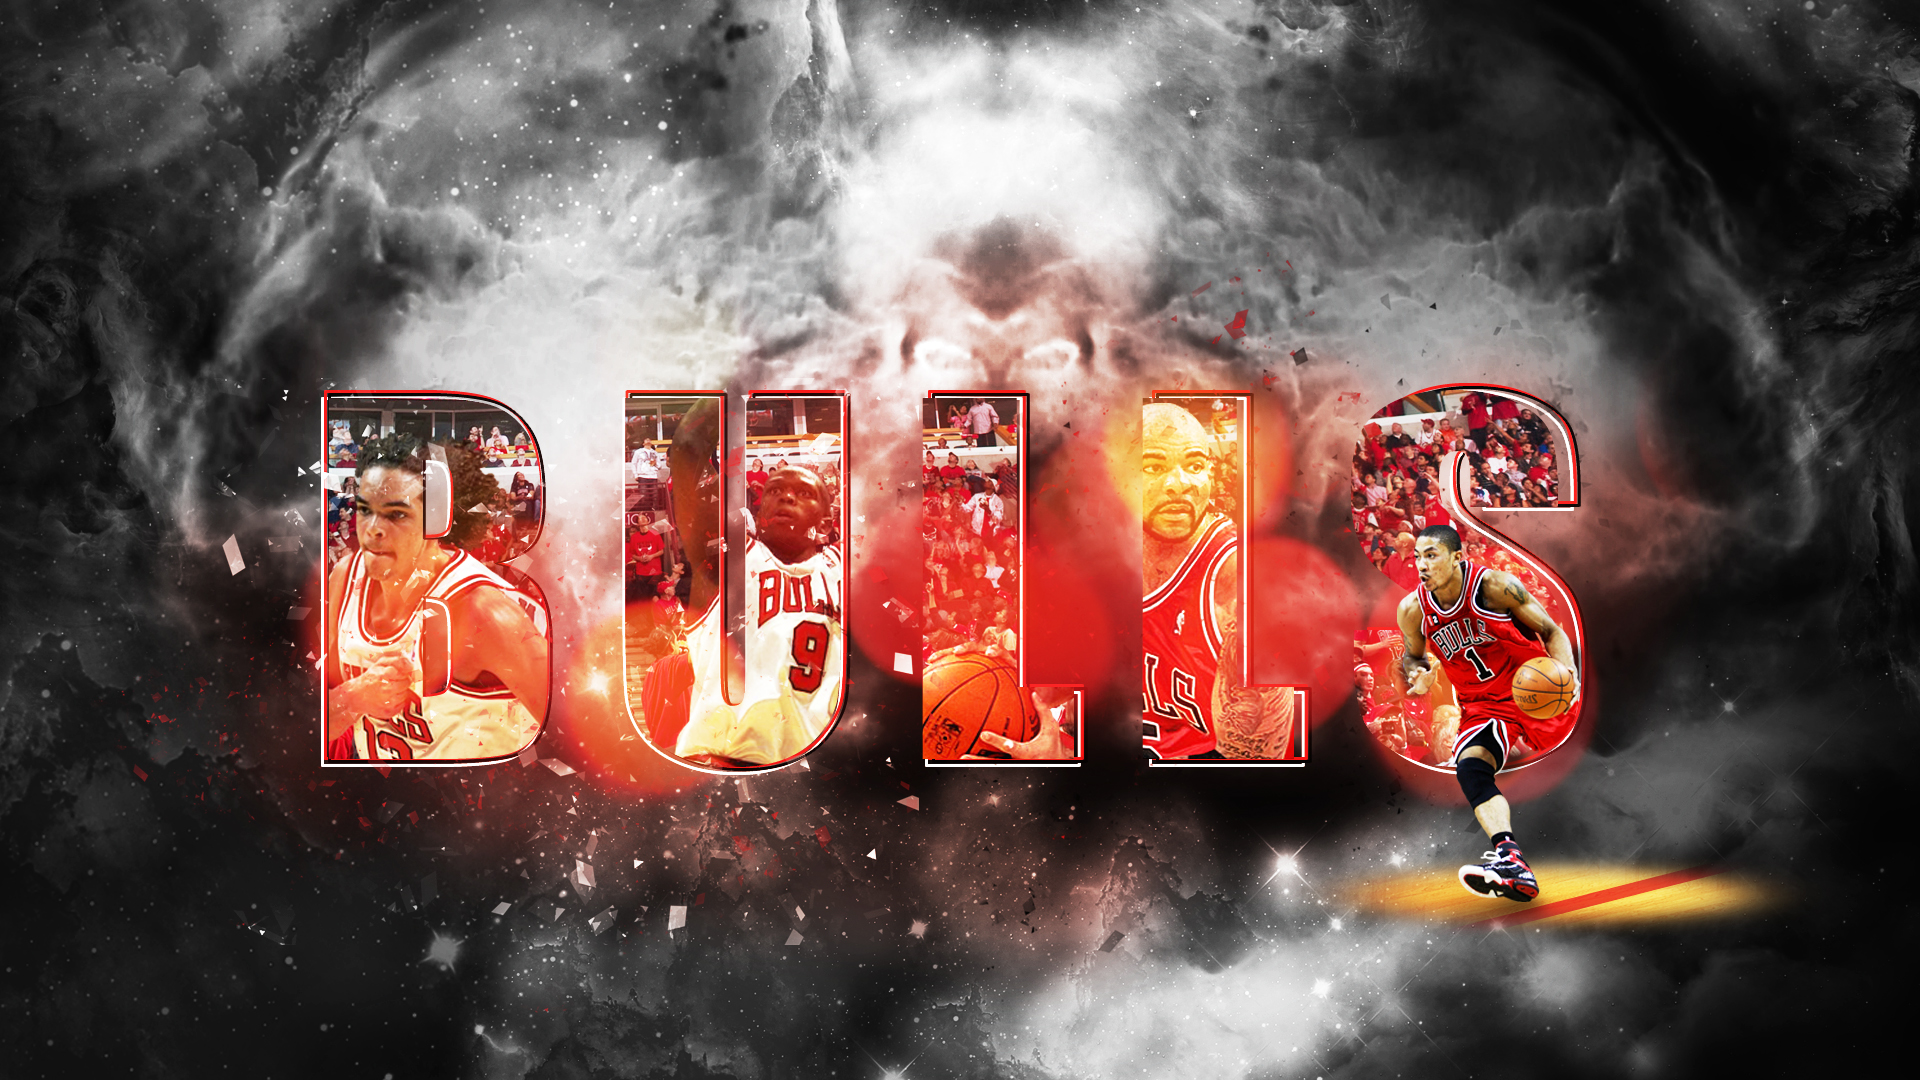 Chicago Bulls by Chadski51 1920 x 1080 widescreen 1920x1080